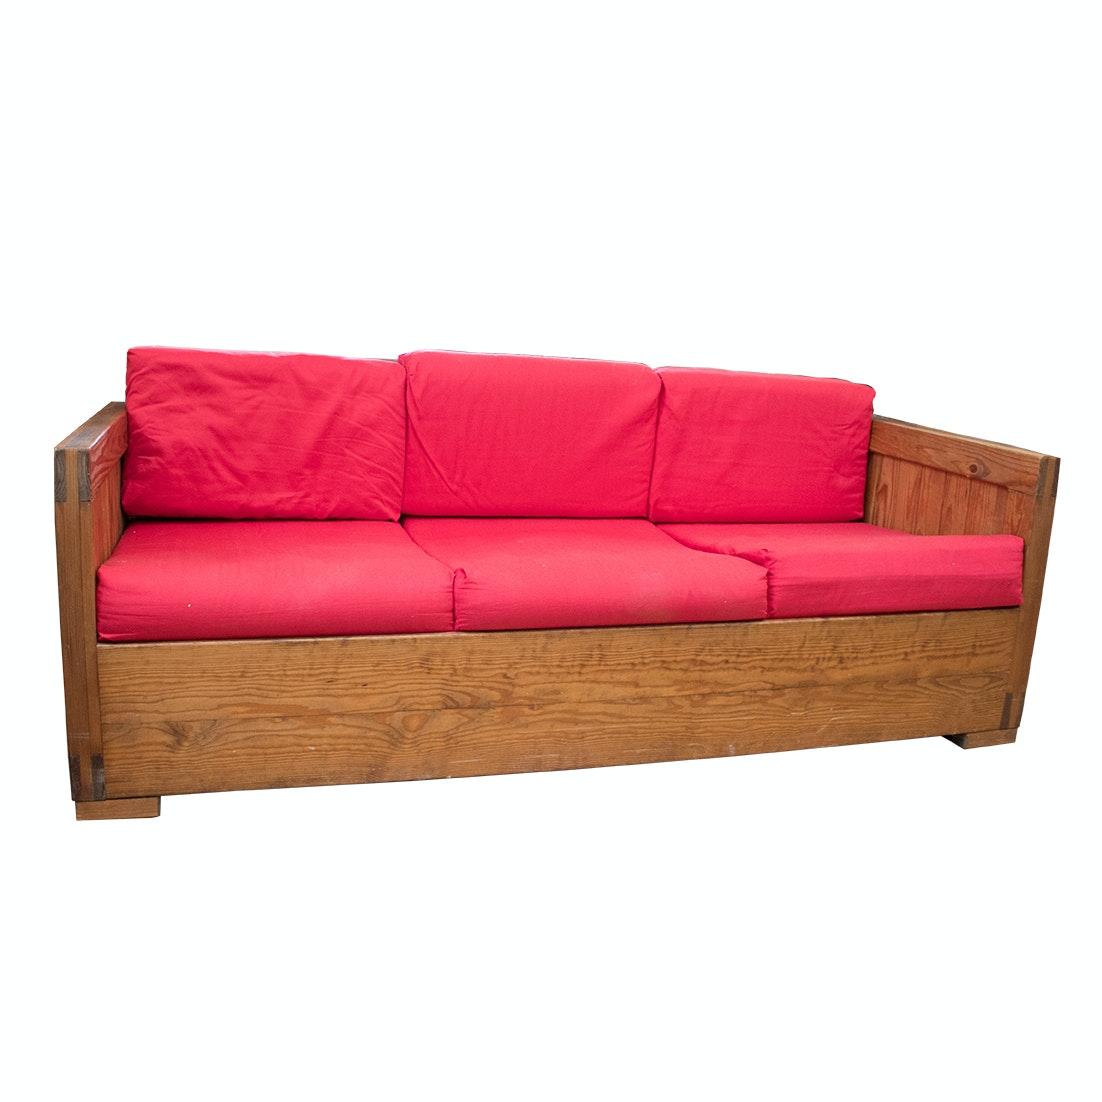 Vintage Wood-Framed Sofa with Red Cushions